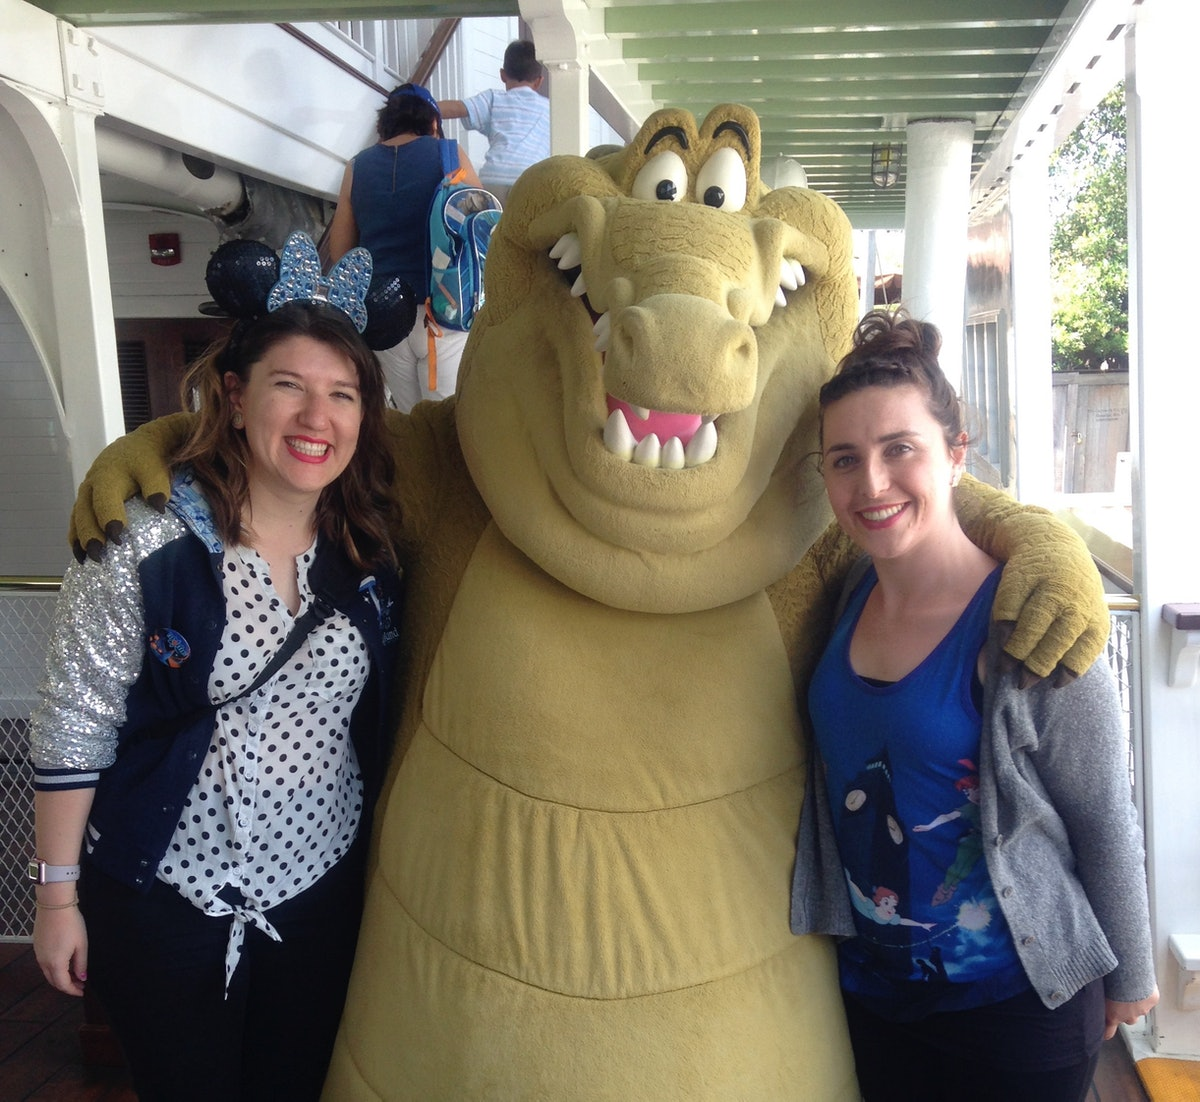 Two women pose for a pic with Louis the alligator from 'The Princess and the Frog' on the Mark Twain Riverboat at Disneyland.